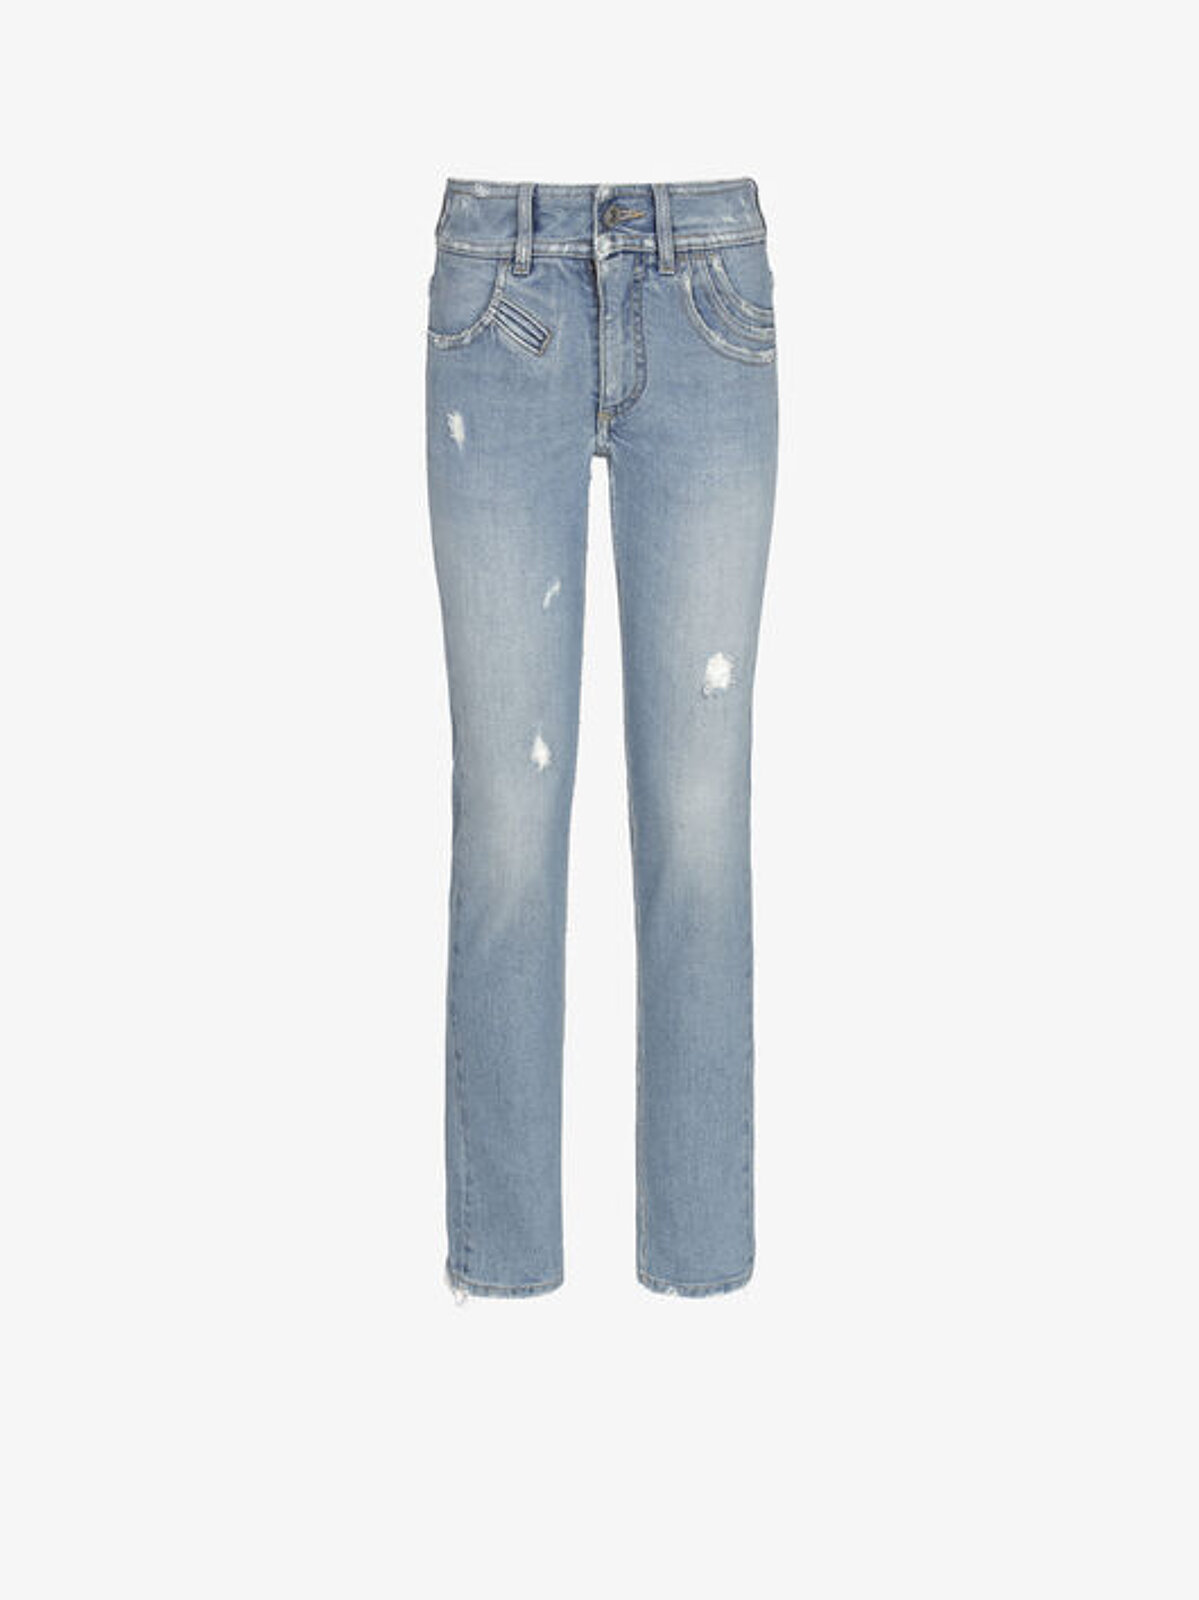 Jeans Slim Fit Multitasche Effetto Destroyed - Givenchy